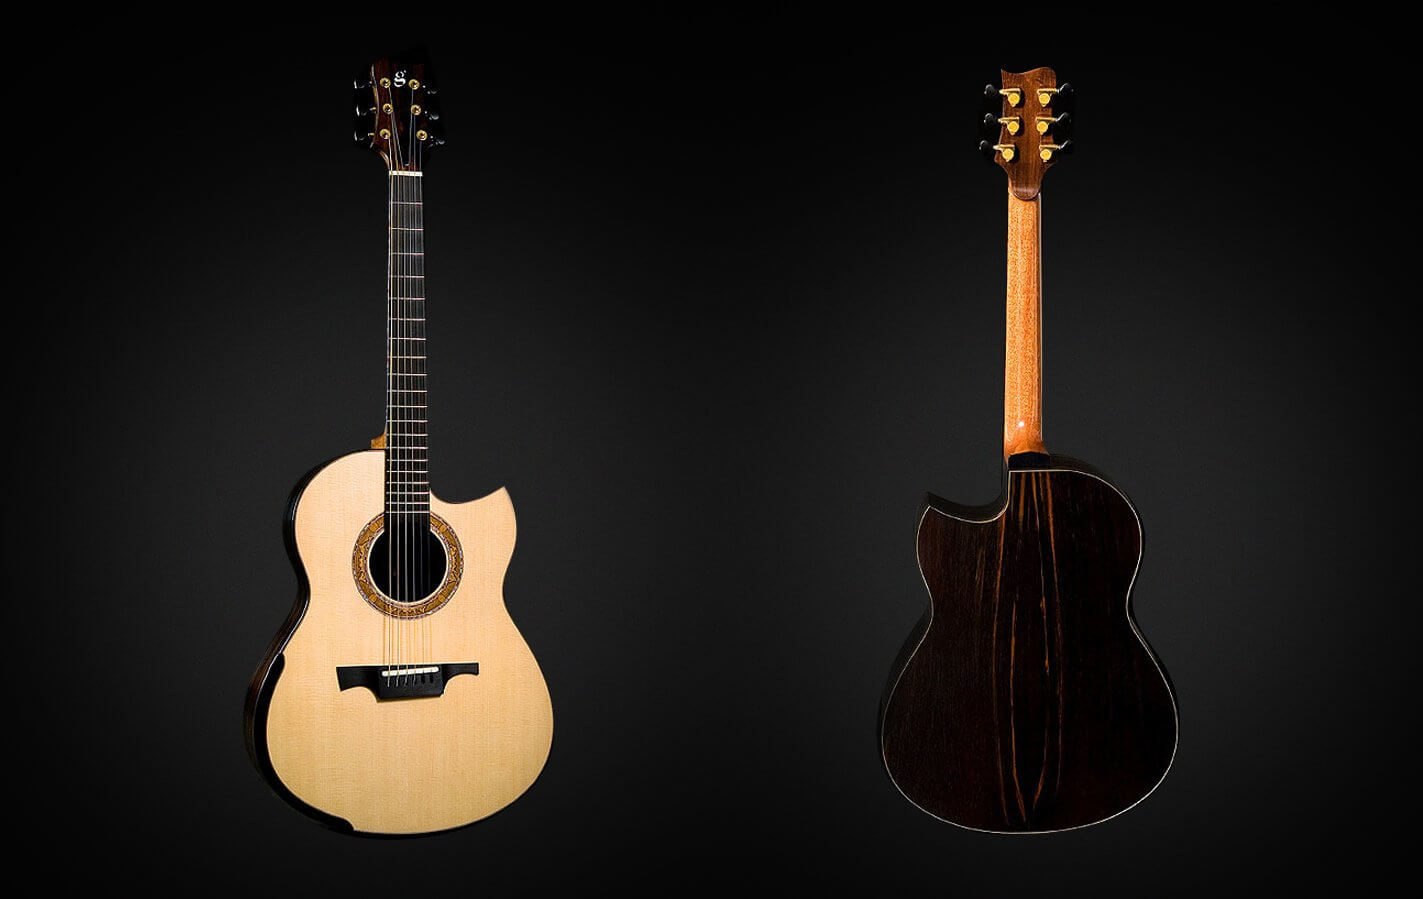 Greenfield Guitars | Fine handmade Acoustic Guitars Model G2, Lutz spruce, Brazilian rosewood, Laskin arm rest